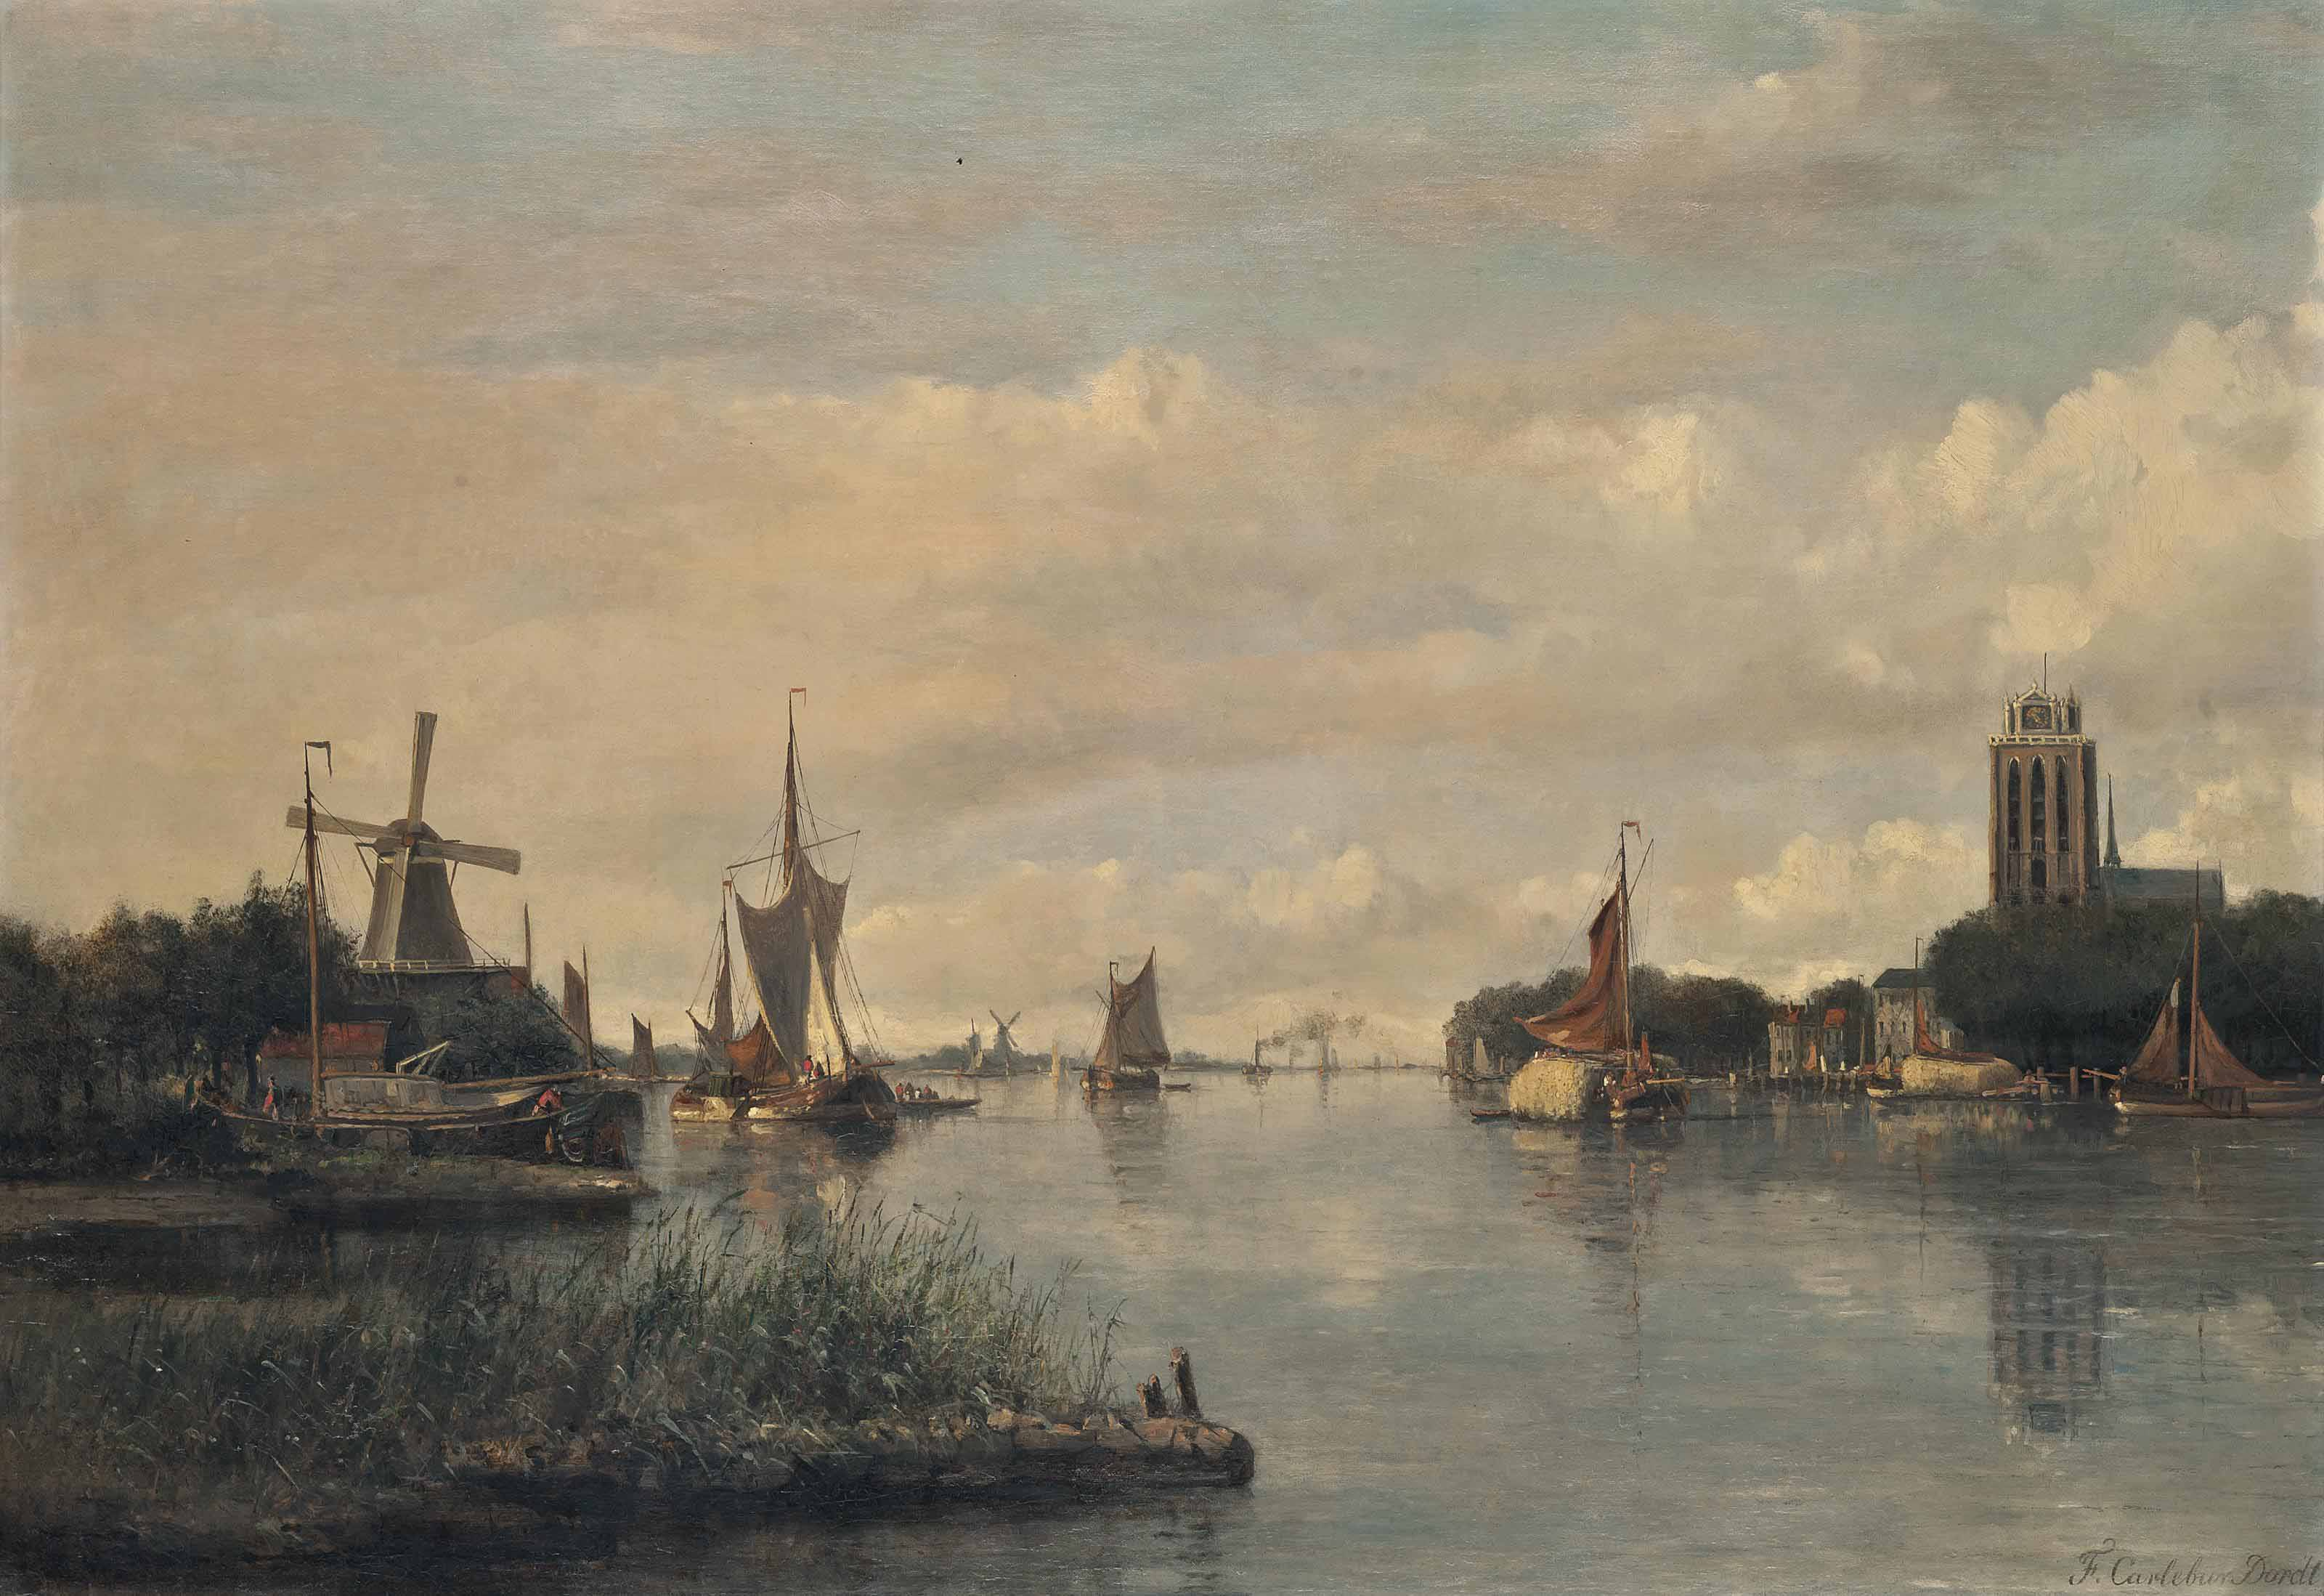 Vessels on the Oude Maas before the Grote kerk, Dordrecht